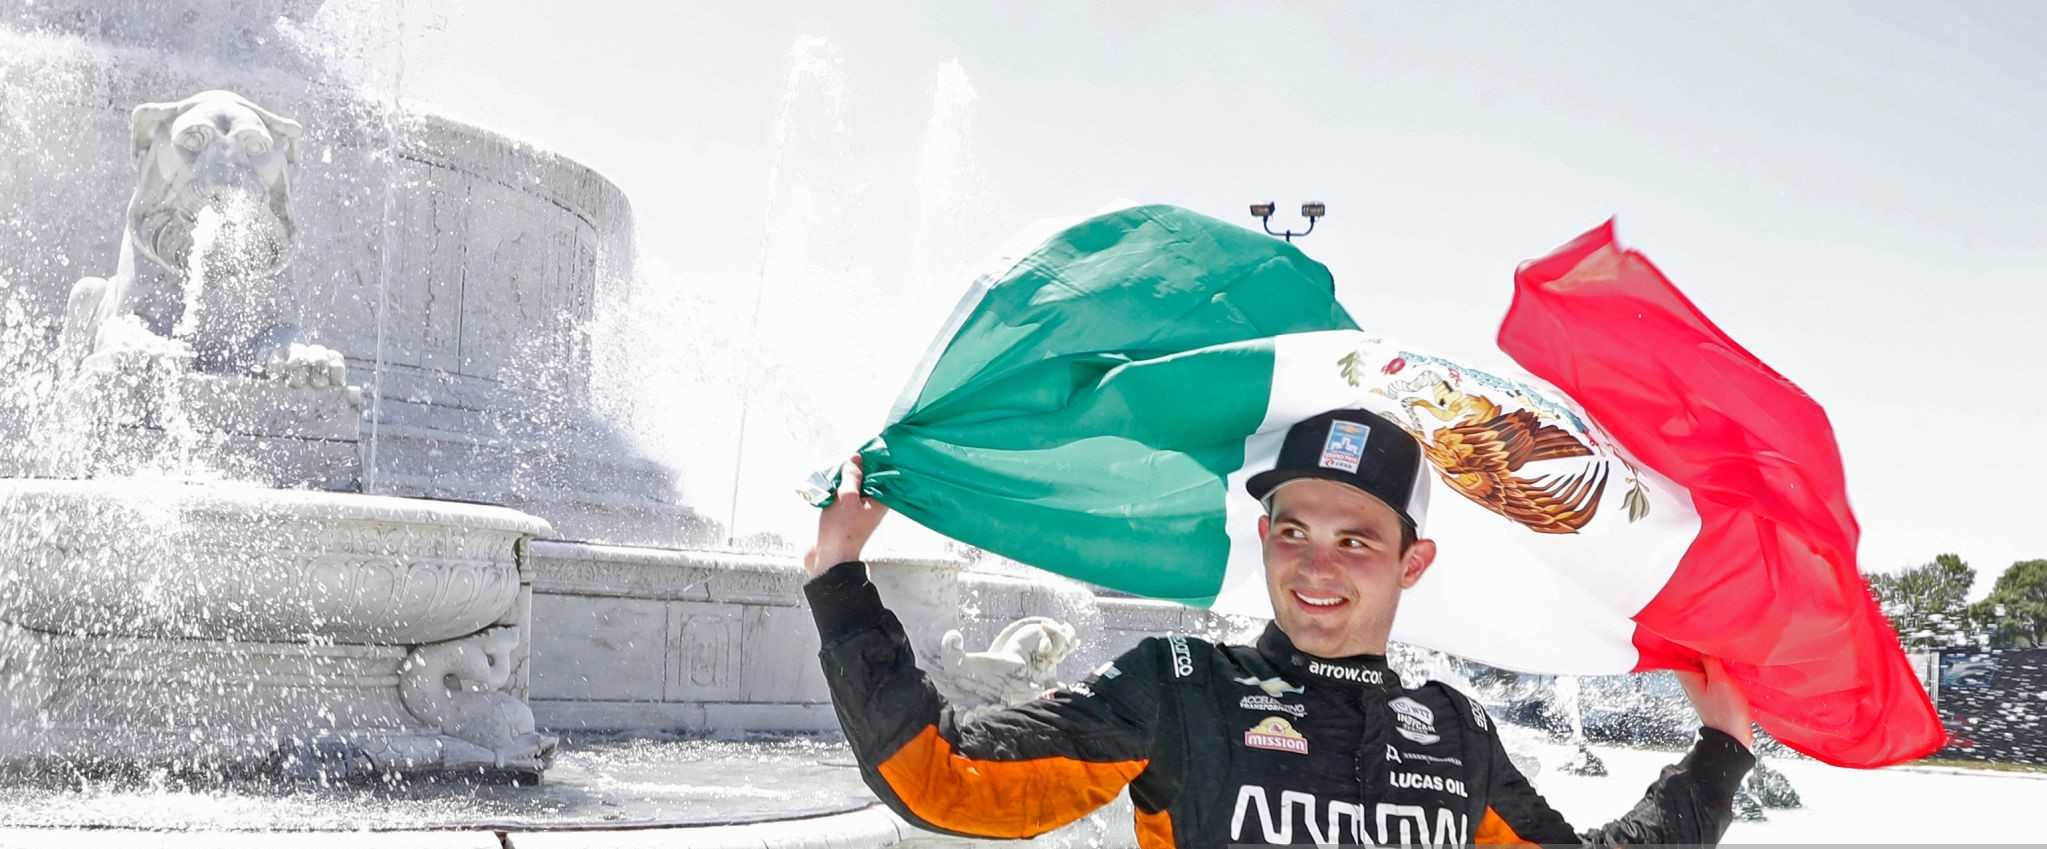 IndyCar's Dual In Detroit Served up Double Delight With Two Epic Races